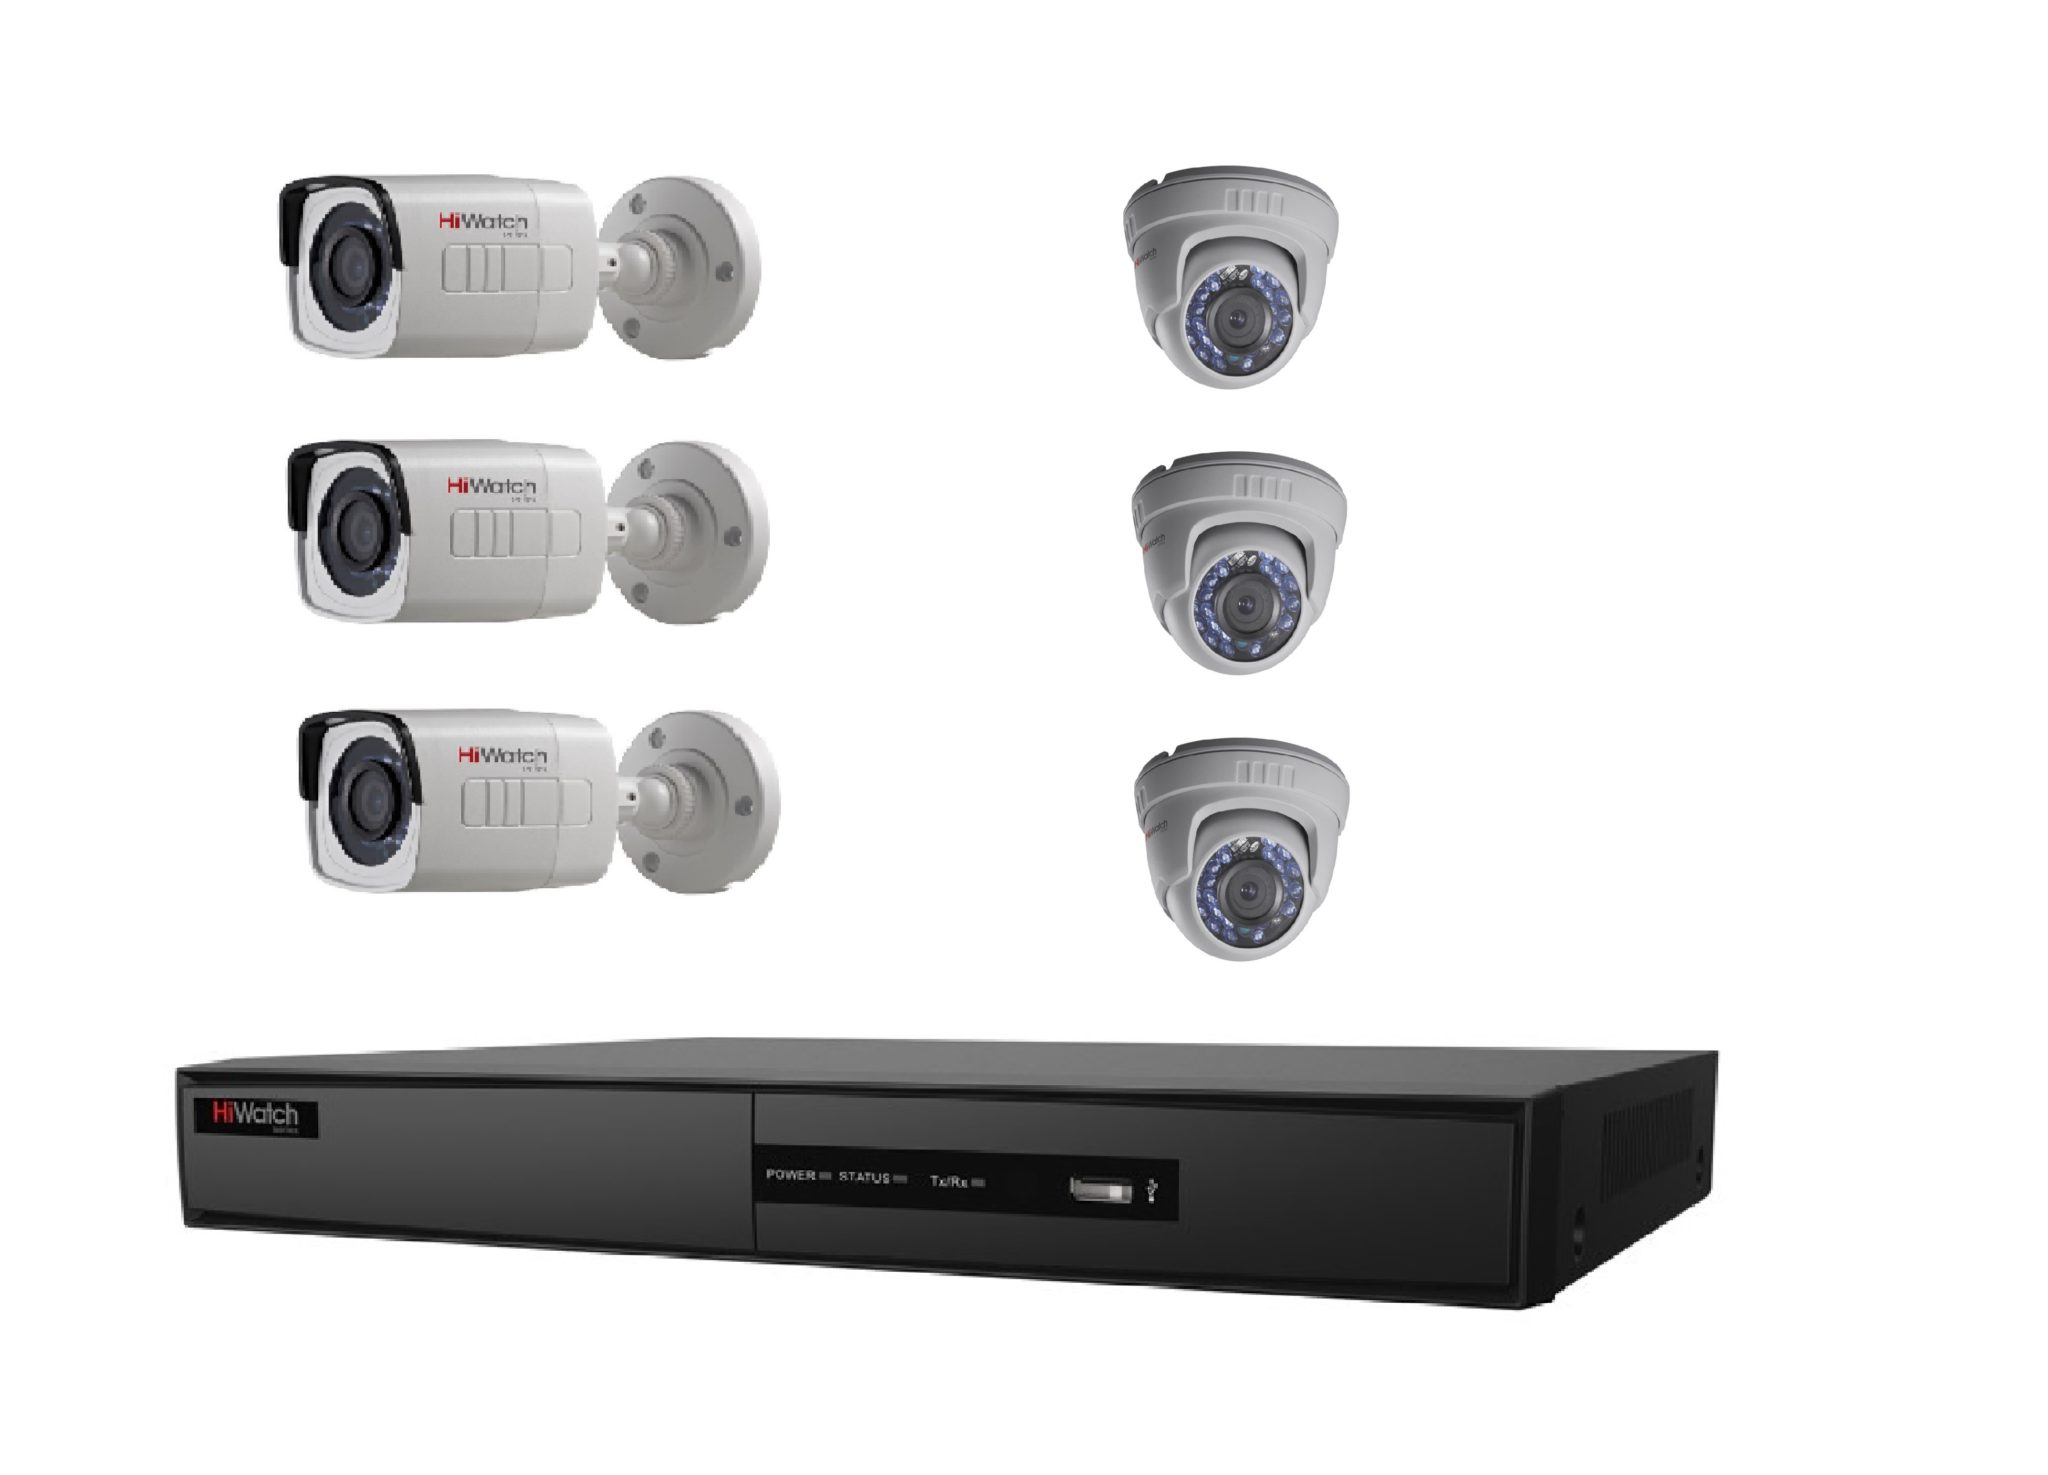 Diy Home Security Cameras Reviews Diy 6 Cctv Camera Package Hiwatch By Hikvision Vip 360